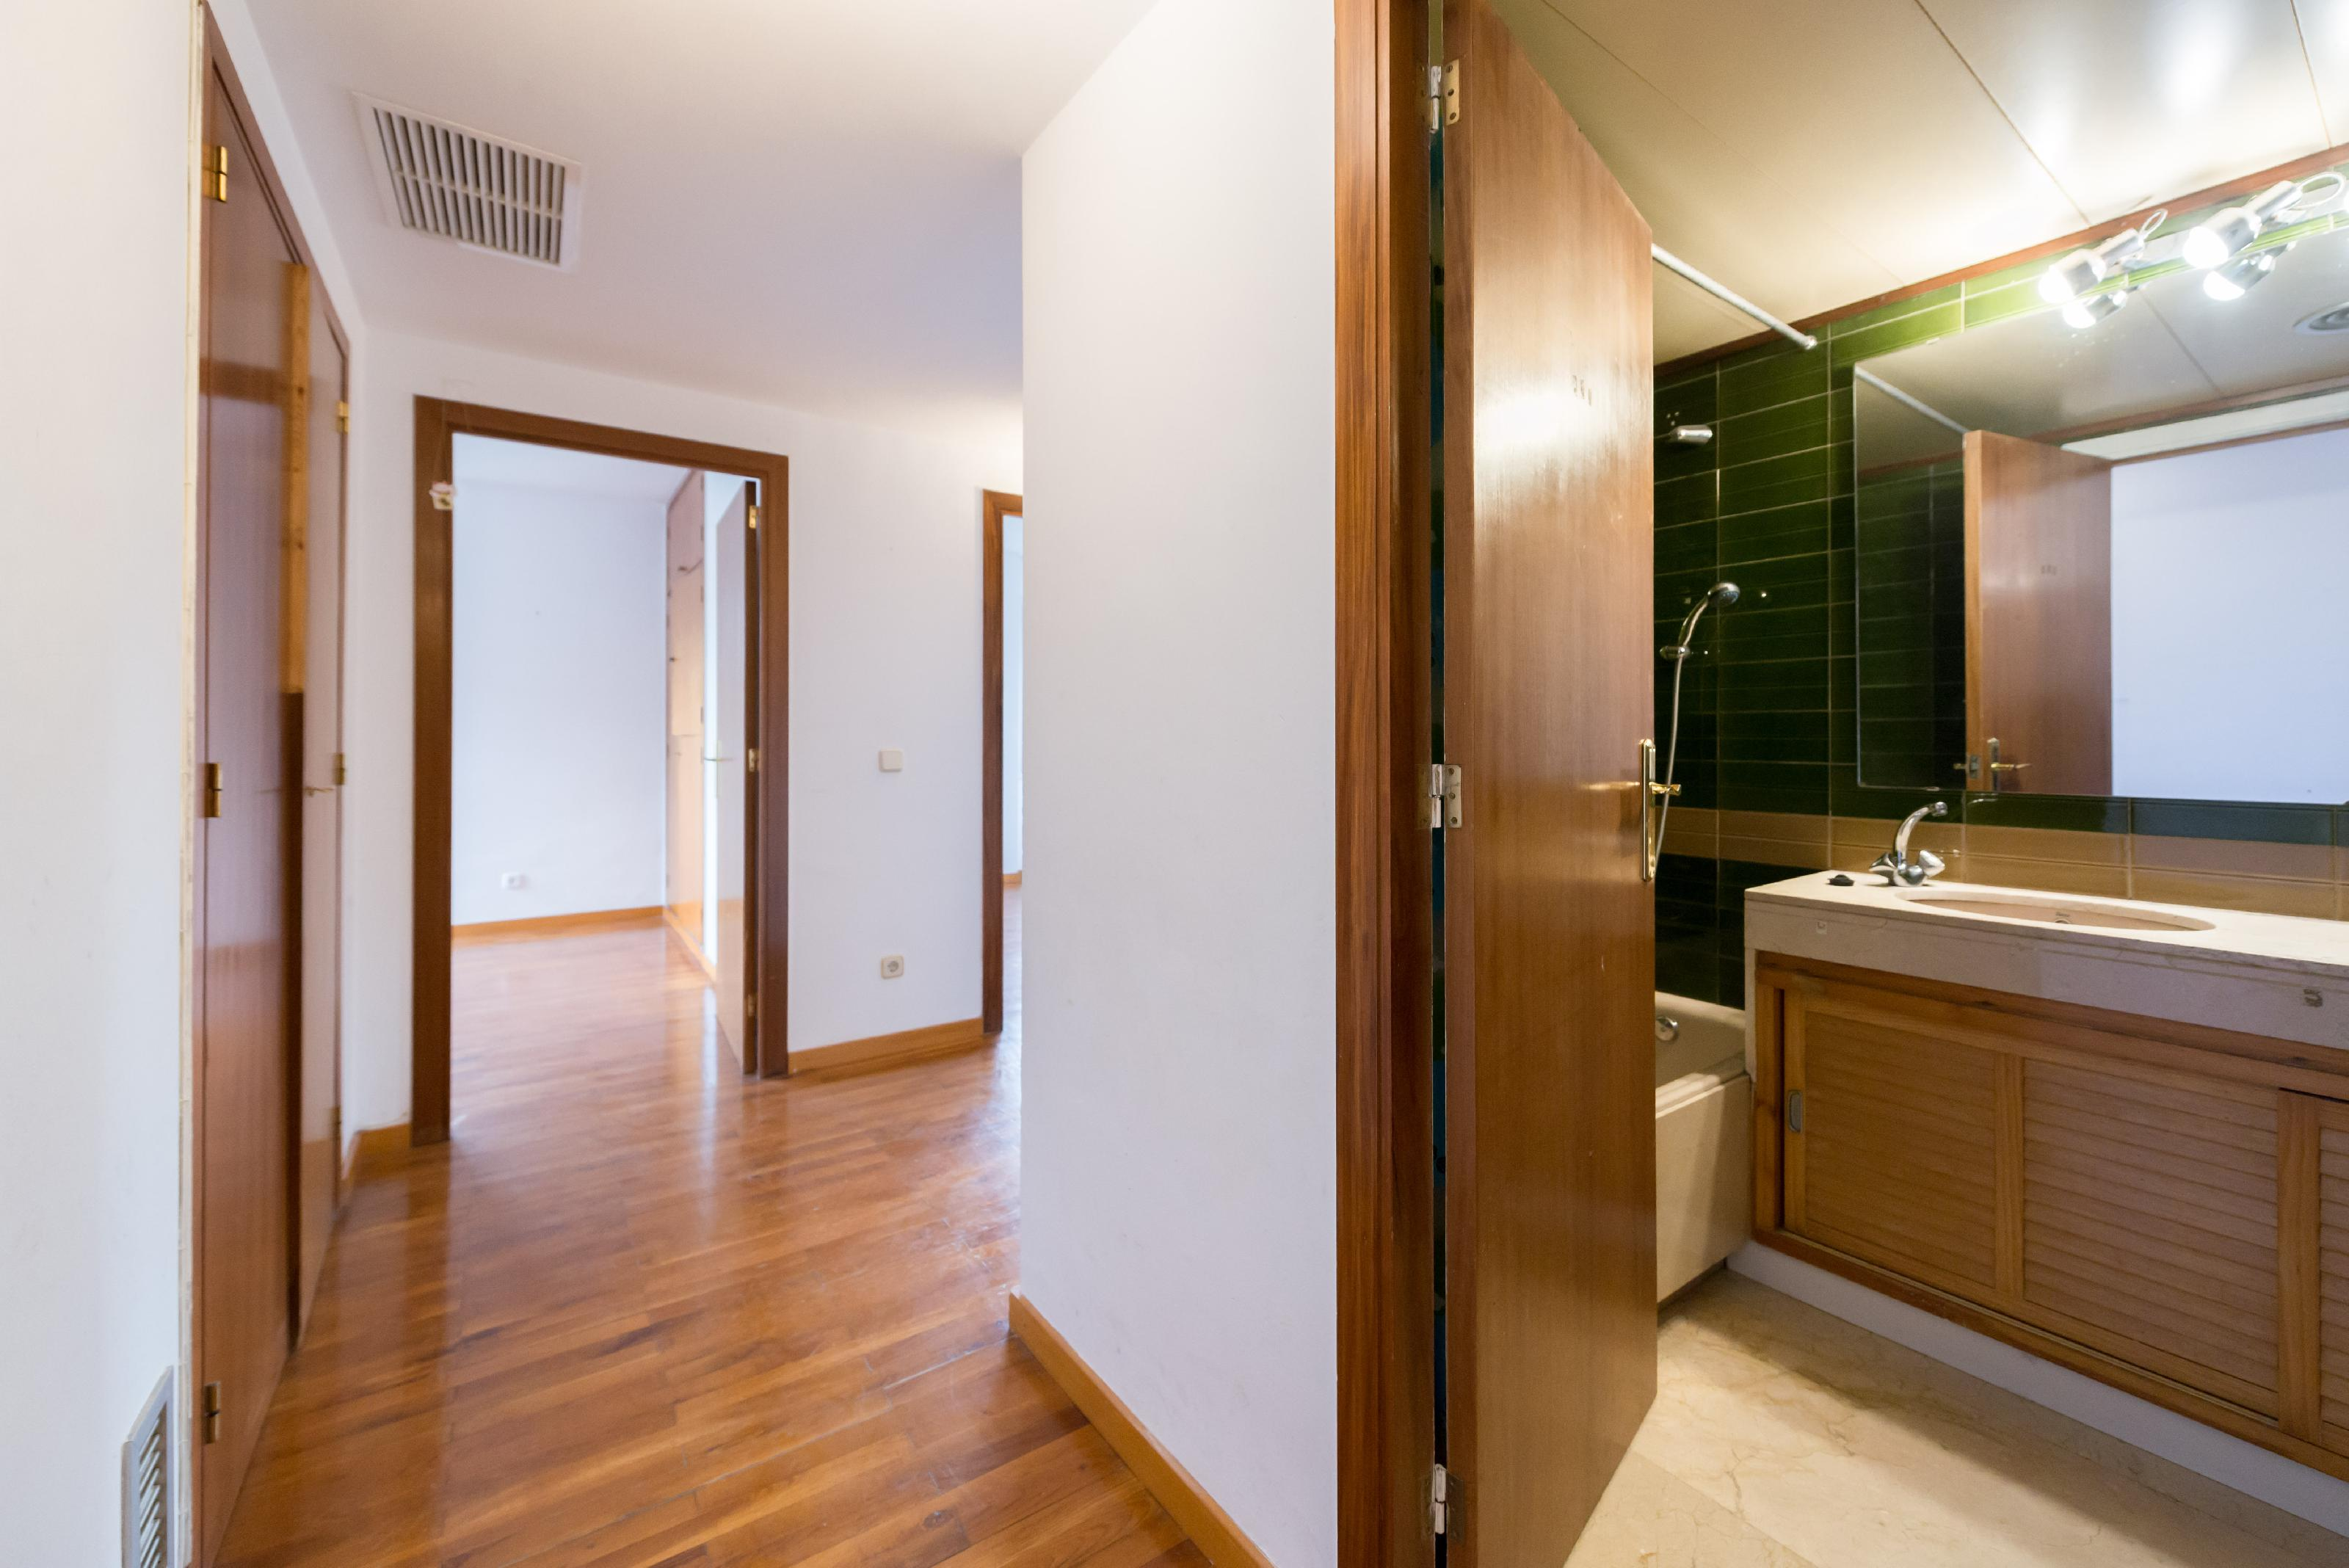 245495 Penthouse for sale in Les Corts, Pedralbes 27